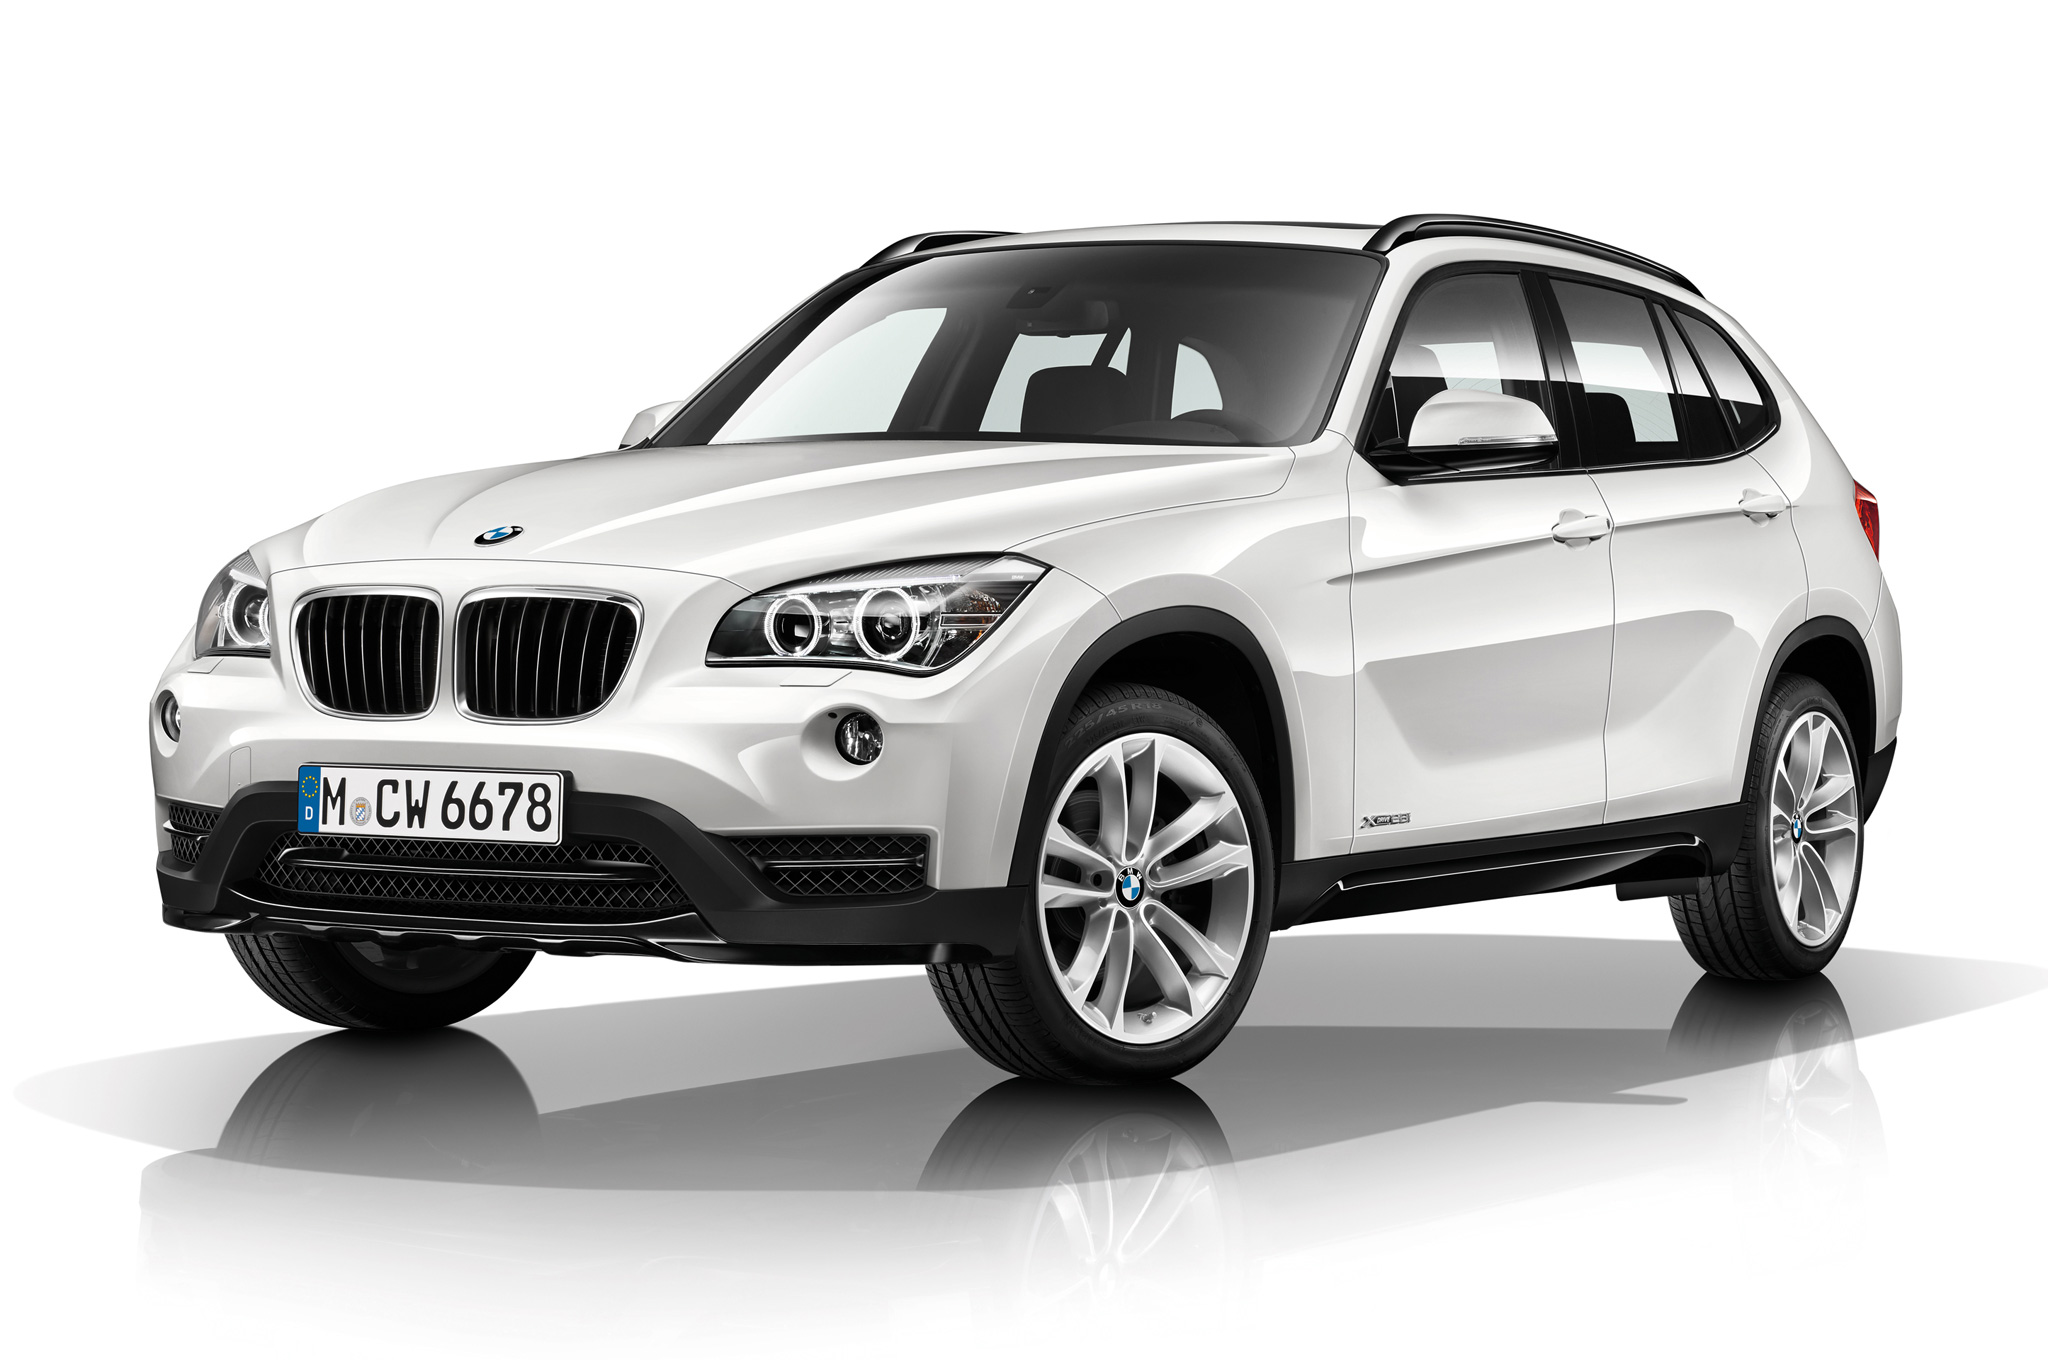 bmw x1 images #14